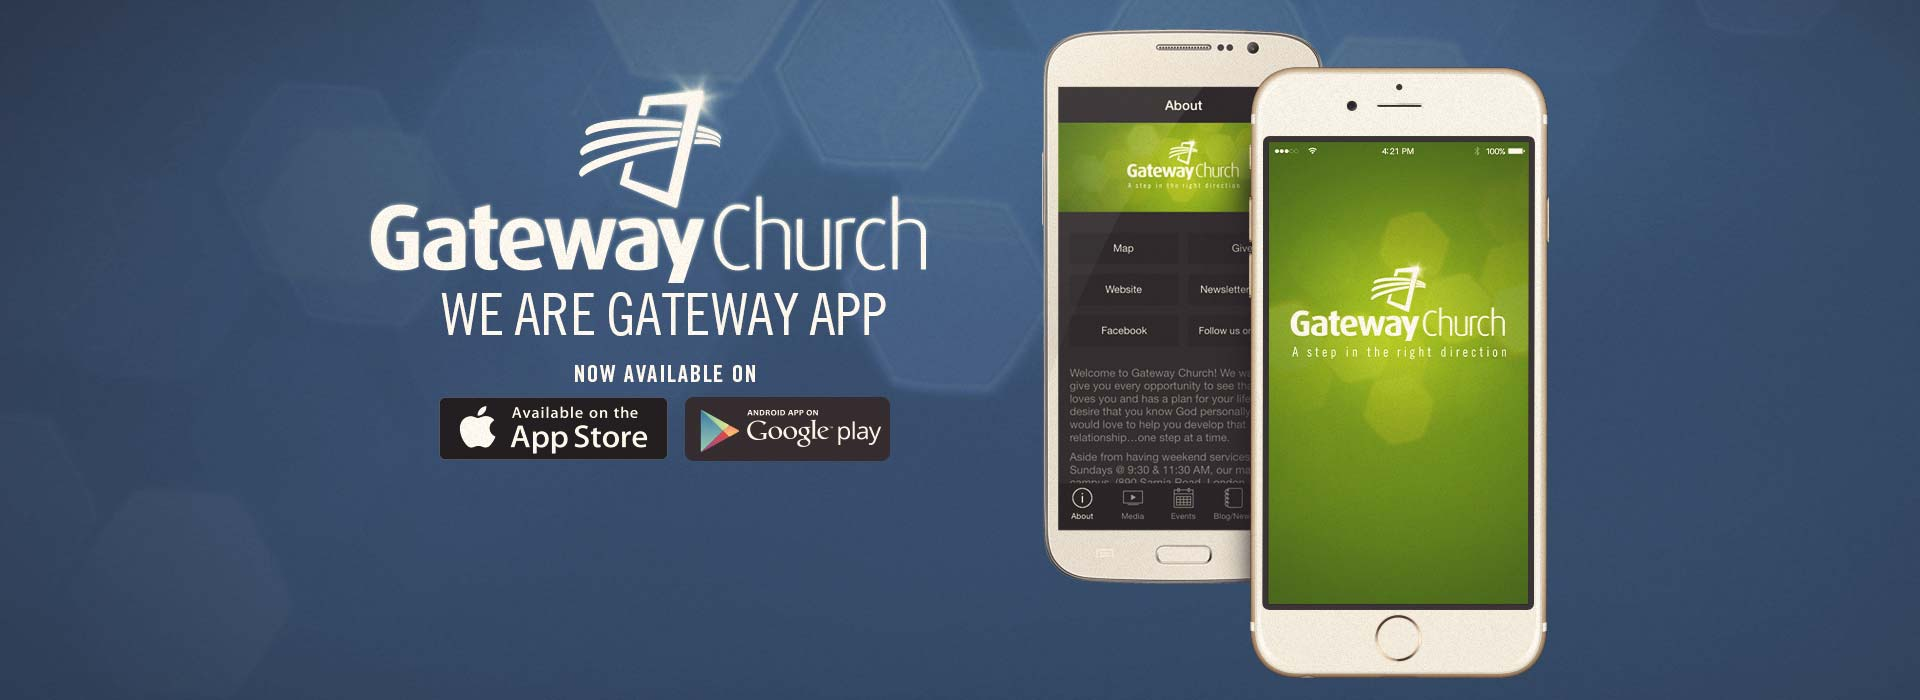 Gateway Church App